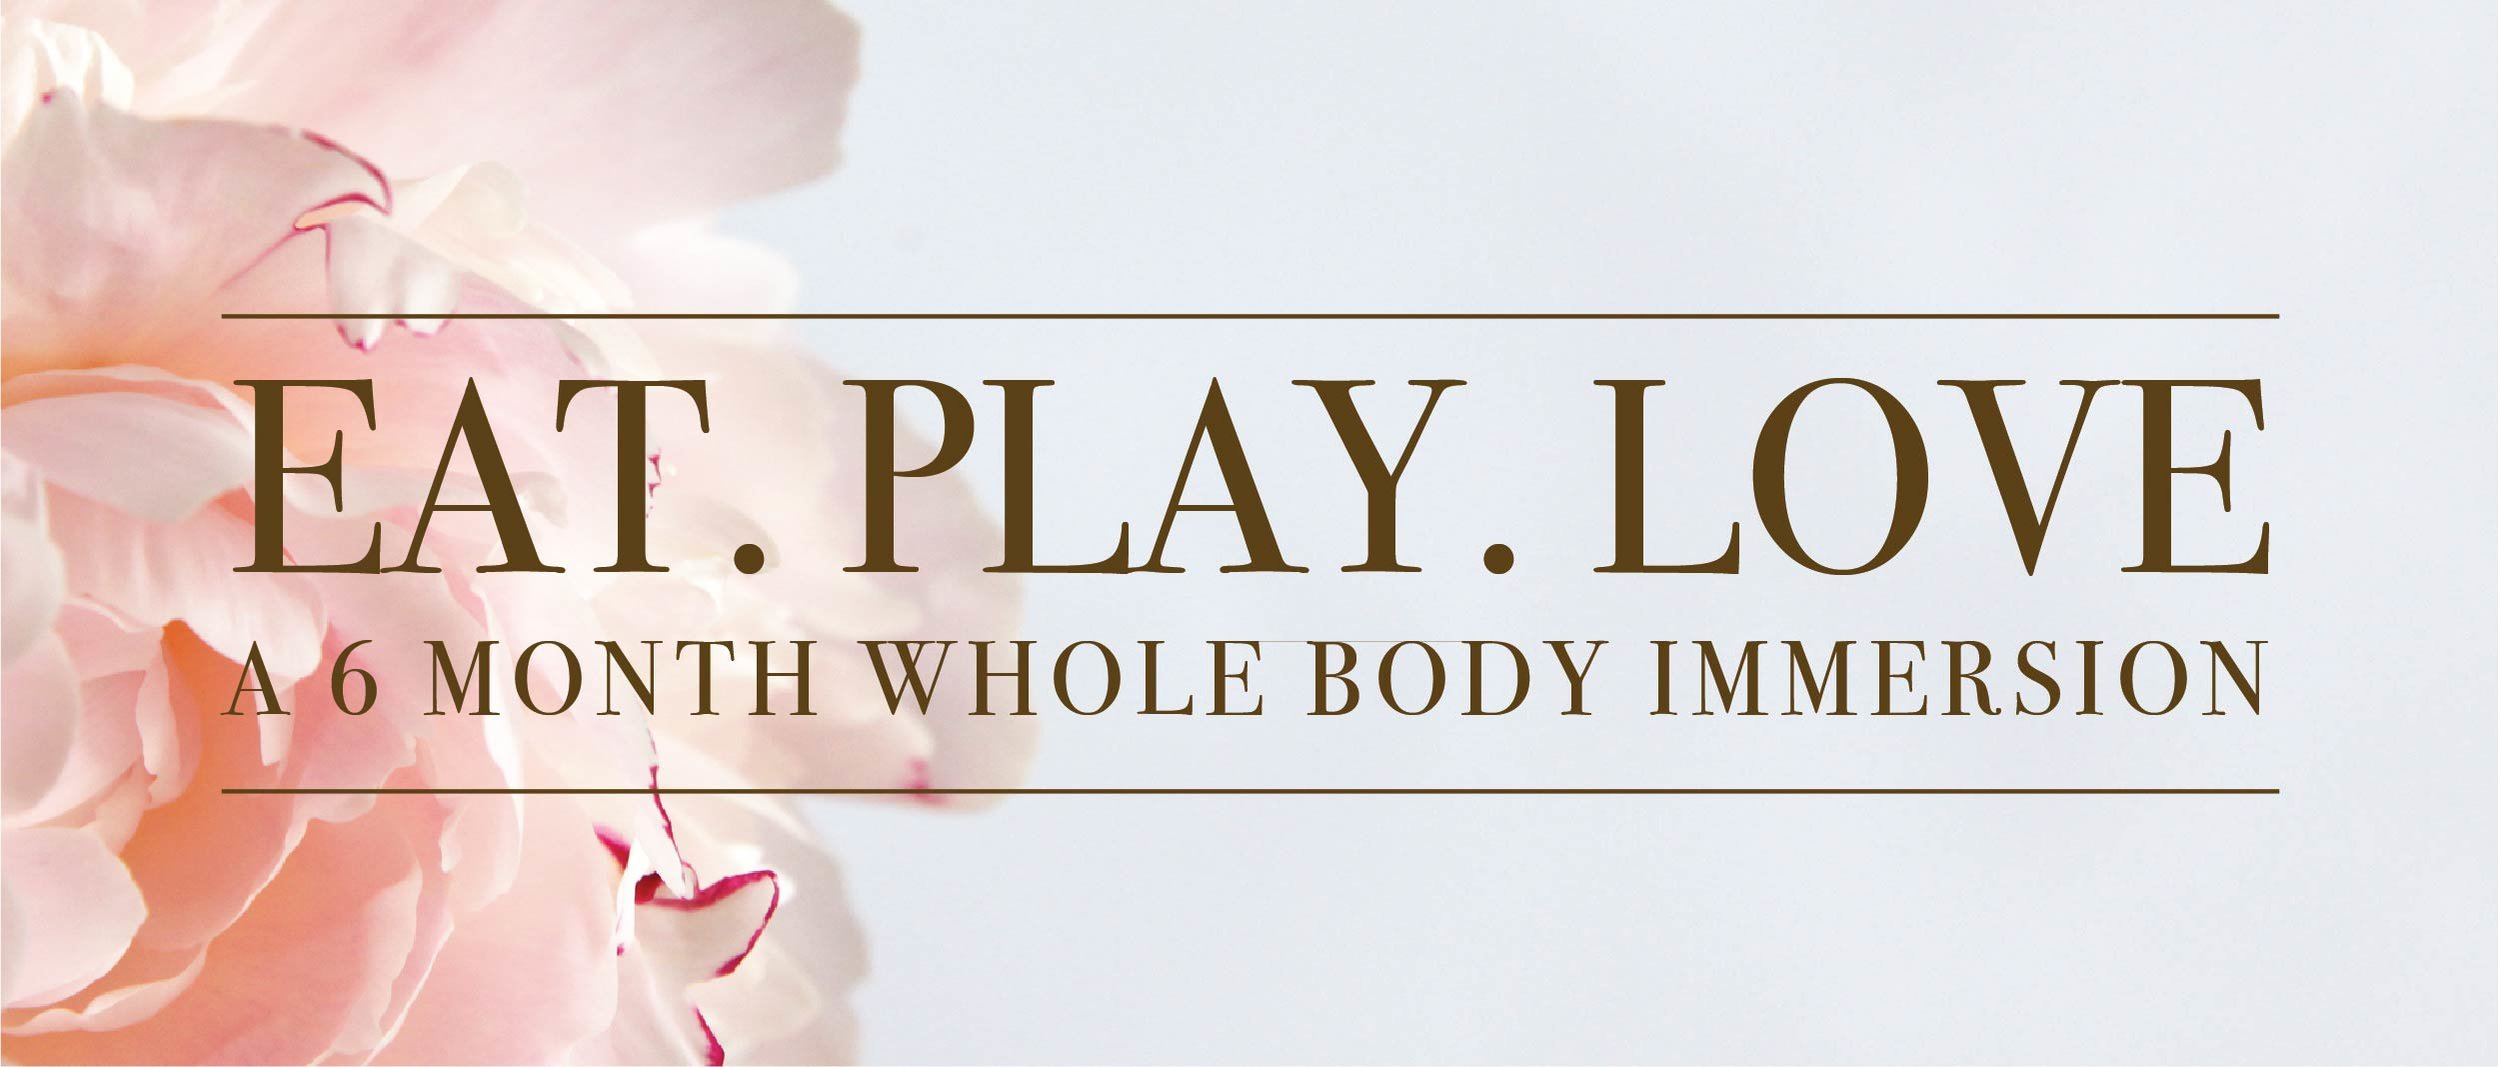 EAT. PLAY. LOVE. - Group Coaching - July - Eat. Play. Love.is an invitation to fall in love with the natural curve of your body & soul.A transformational body-love programdesigned to provide you with the mindset, tools, and guidance that will bridge your physical self-nourishment and the whispering of your soul.